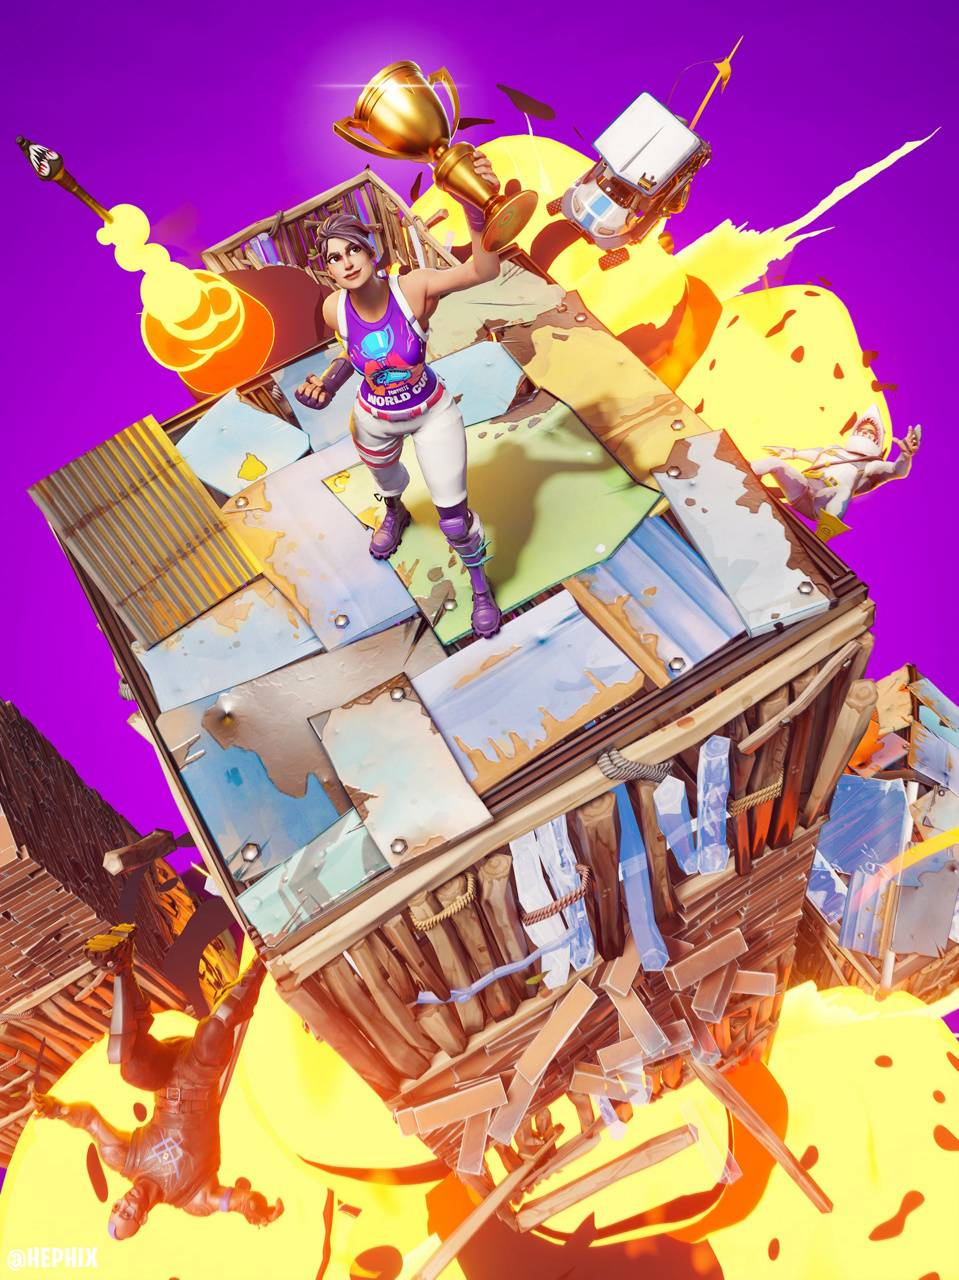 Fortnite World Cup Wallpaper By Paulmb2001 Aa Free On Zedge